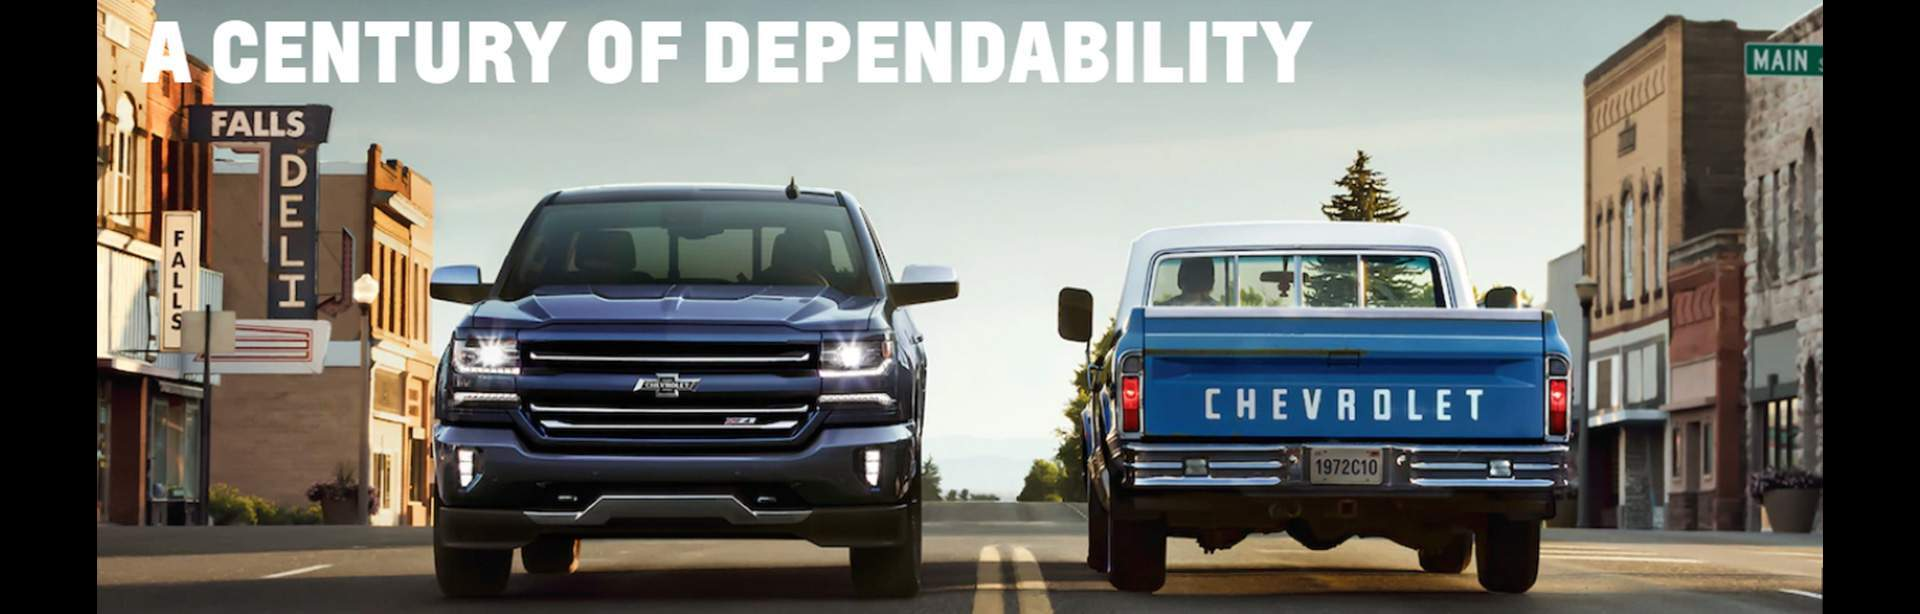 A Century of Dependability